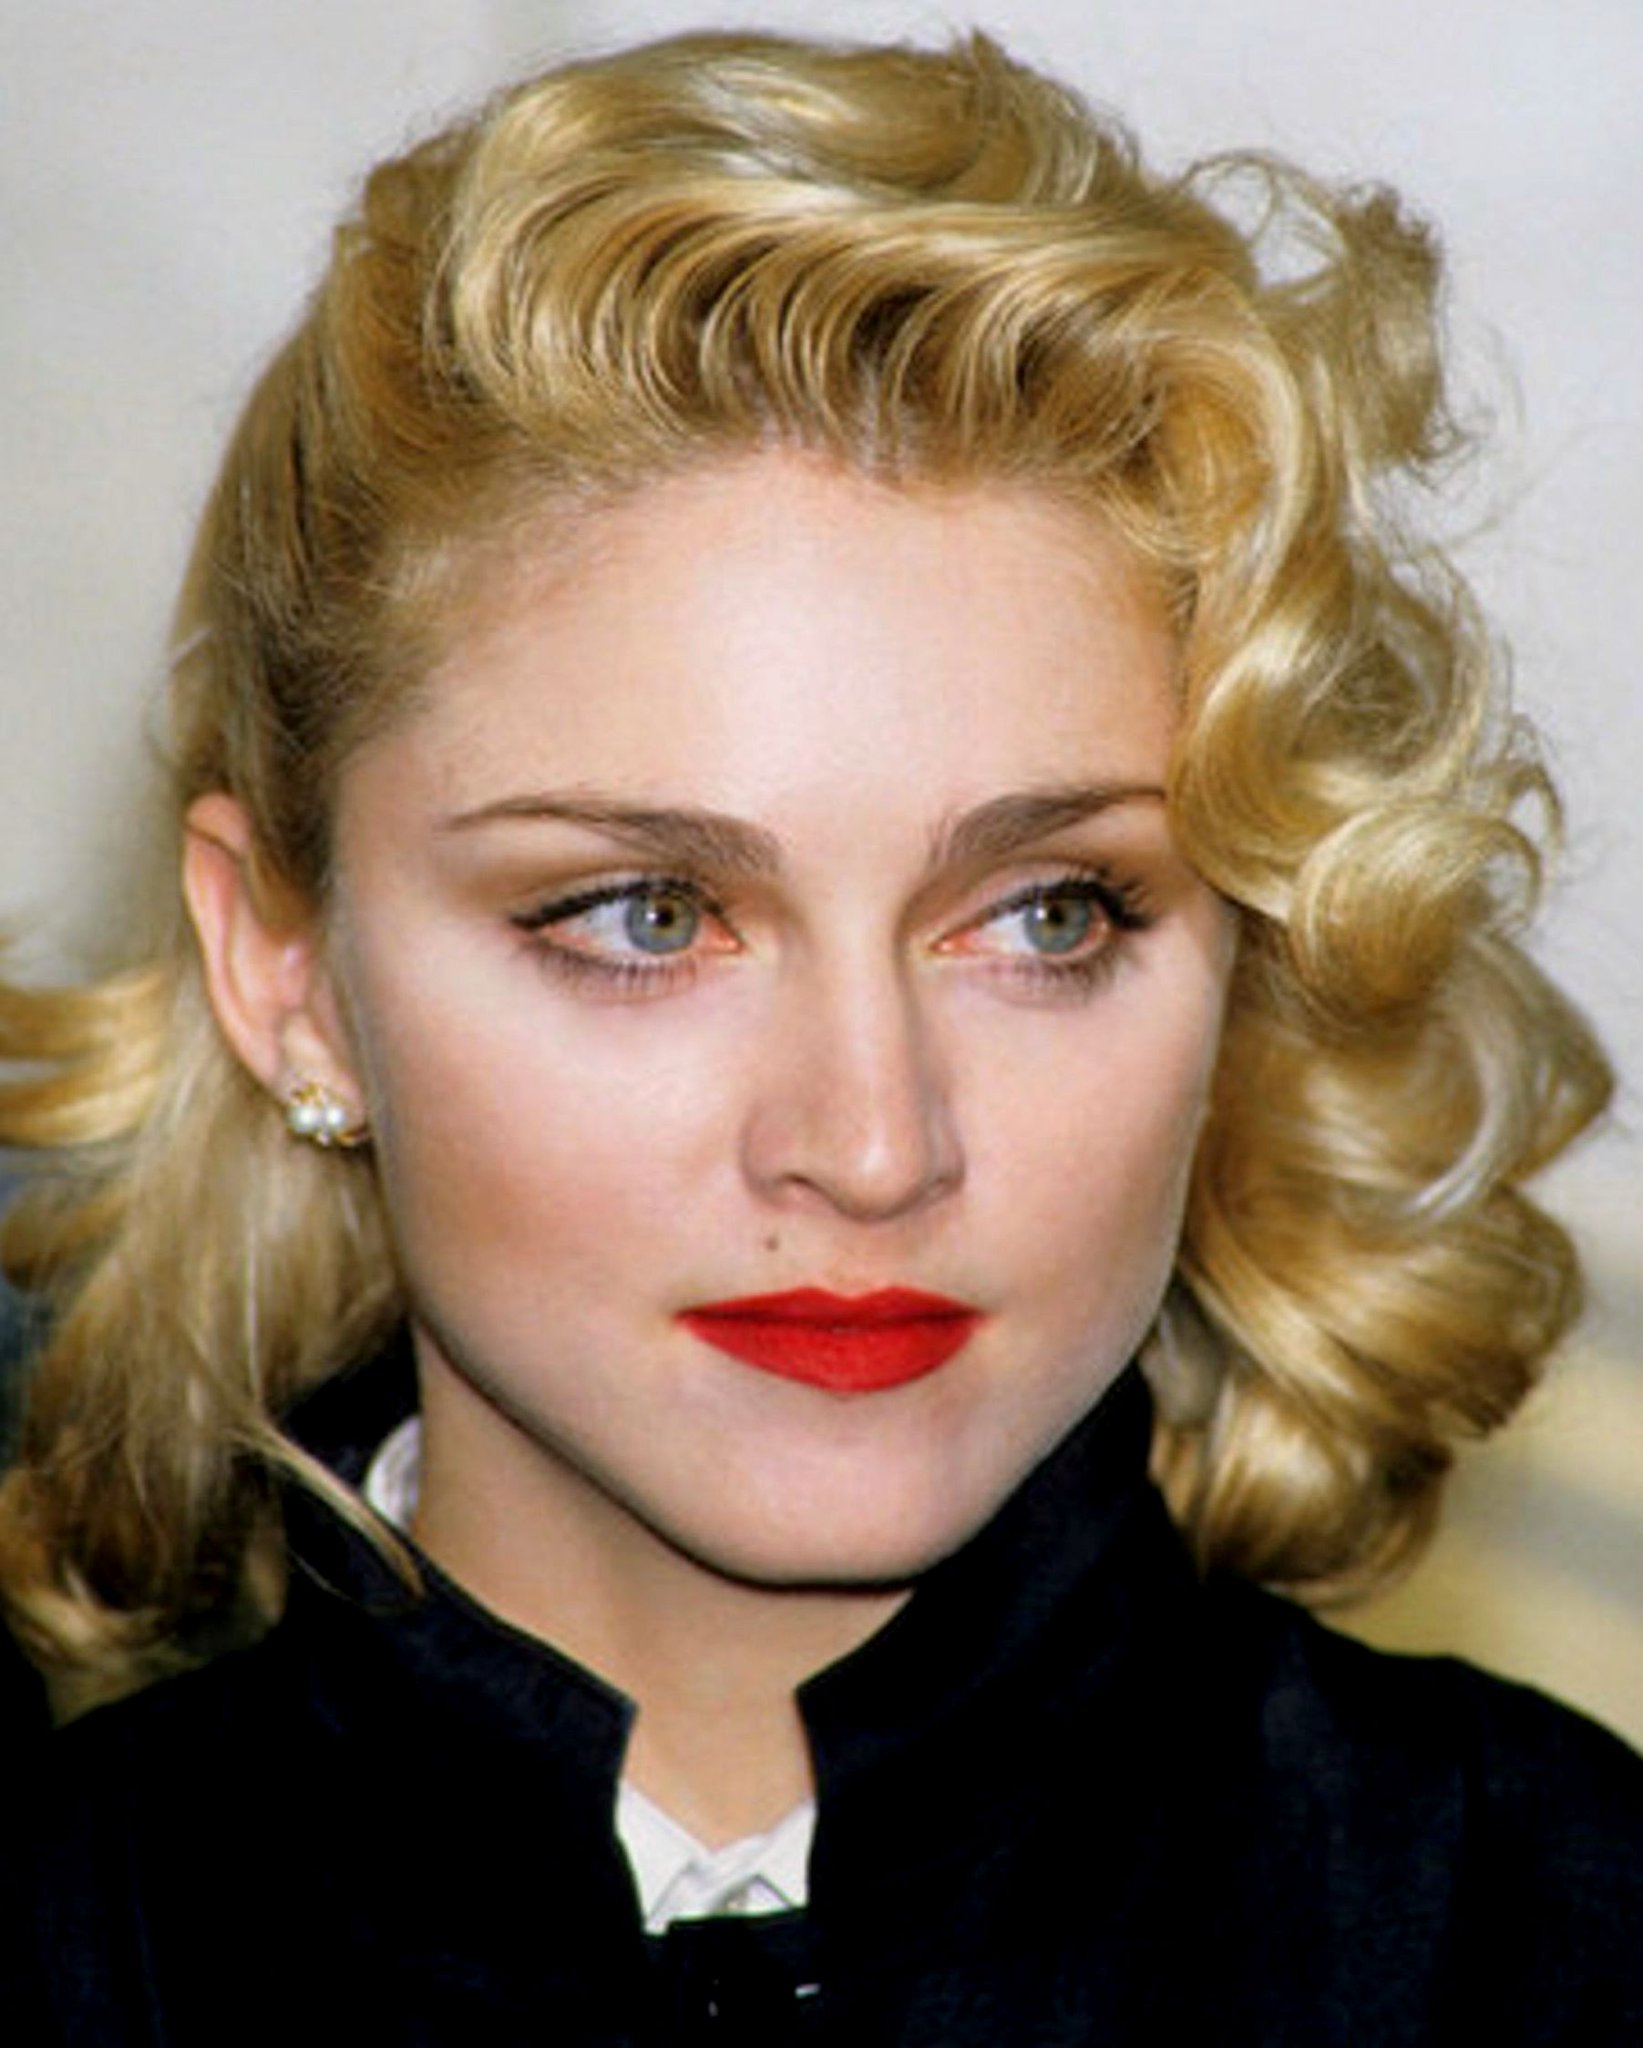 Madonna August 16 Sending Very Happy Birthday WIshes! All the Best!